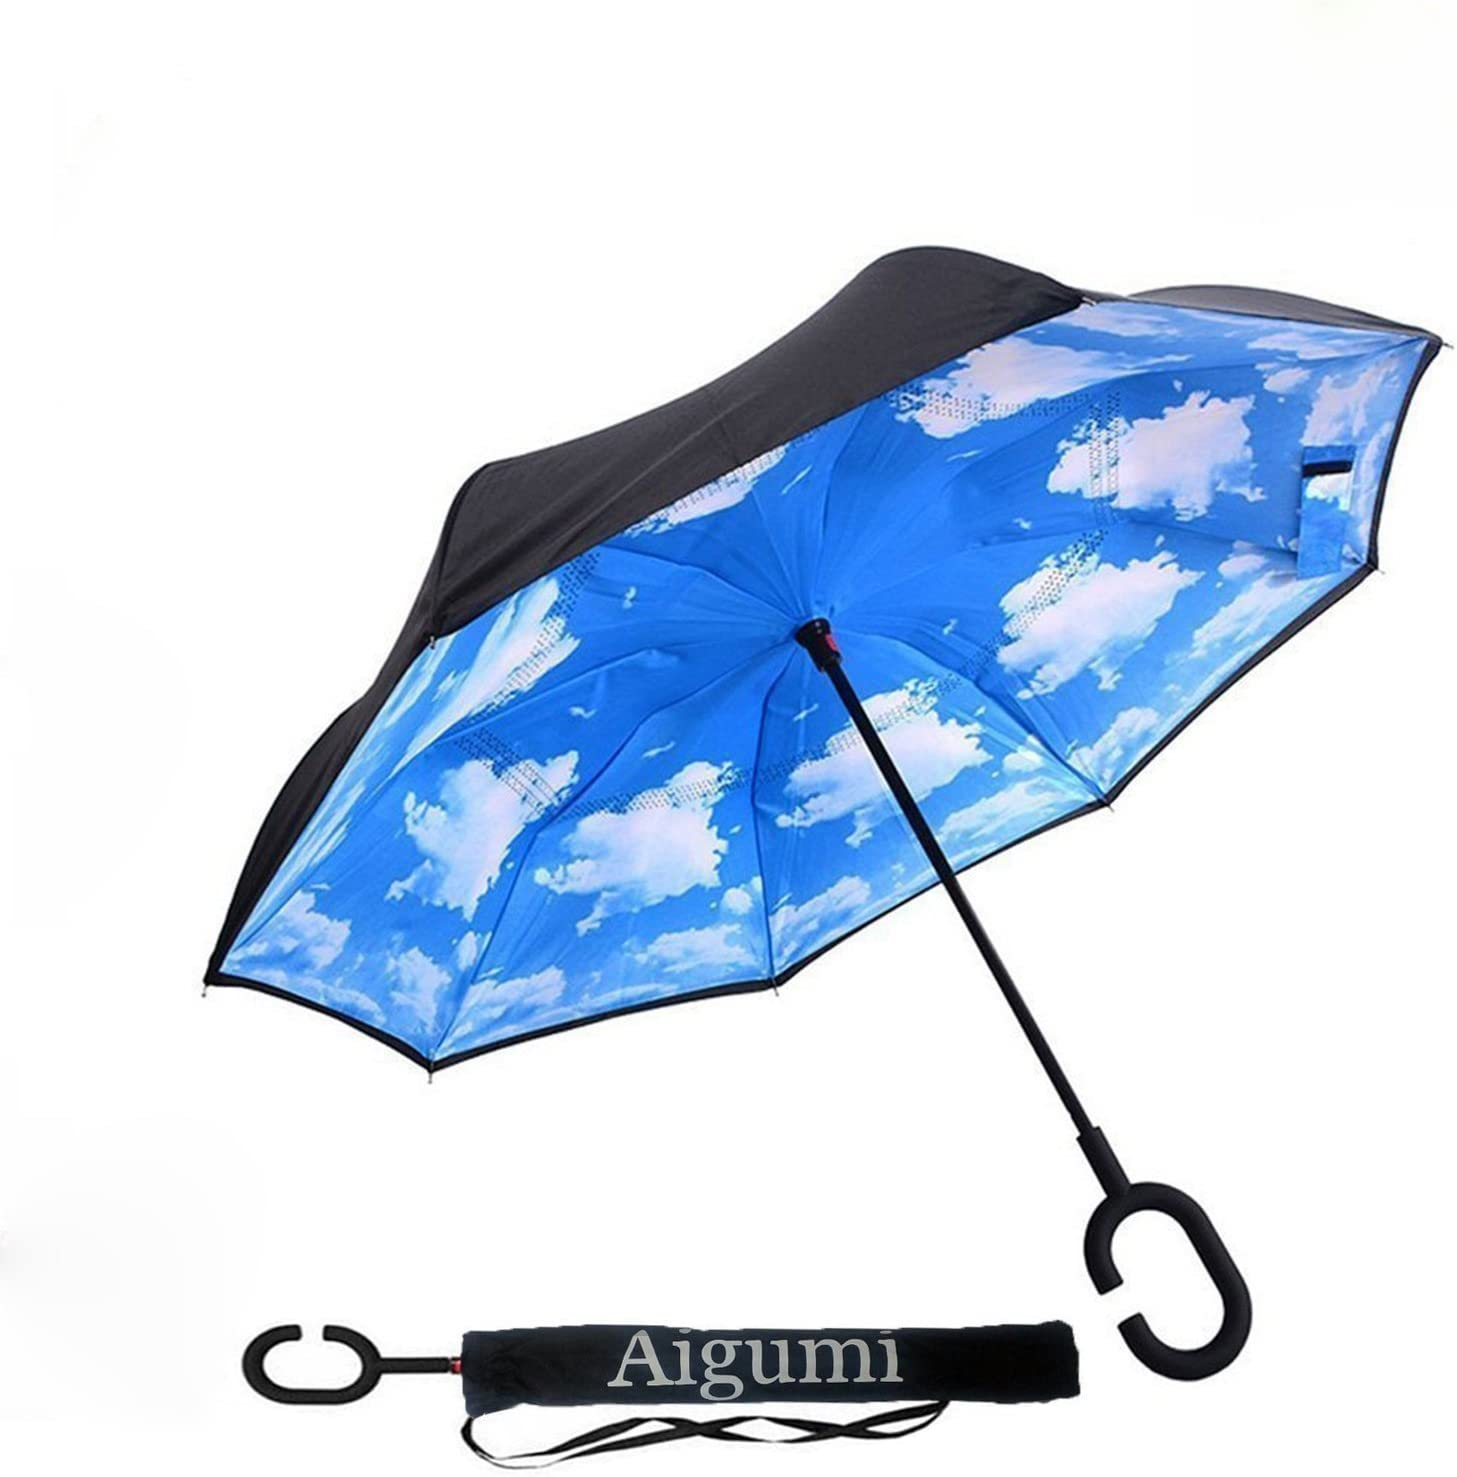 Double Layer Inverted Inverted Umbrella Is Light And Sturdy Sweetie Kokeshi Girl Reverse Umbrella And Windproof Umbrella Edge Night Reflection